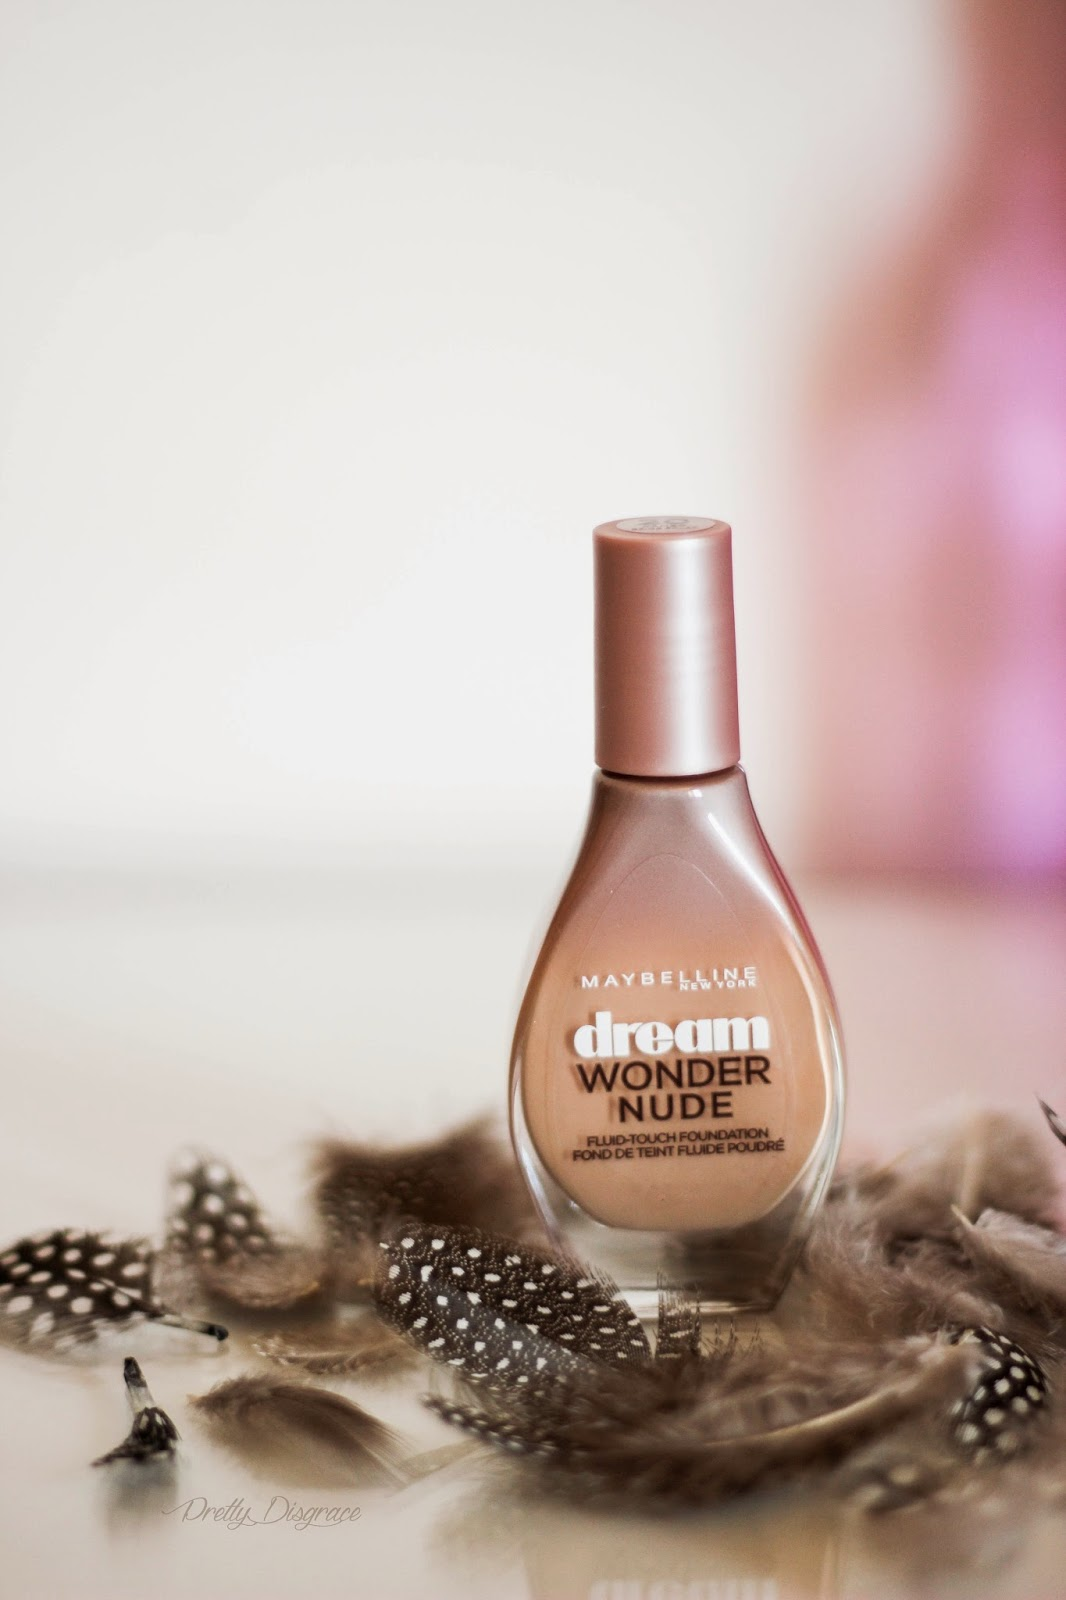 Dream Wonder Nude Gemey Maybelline